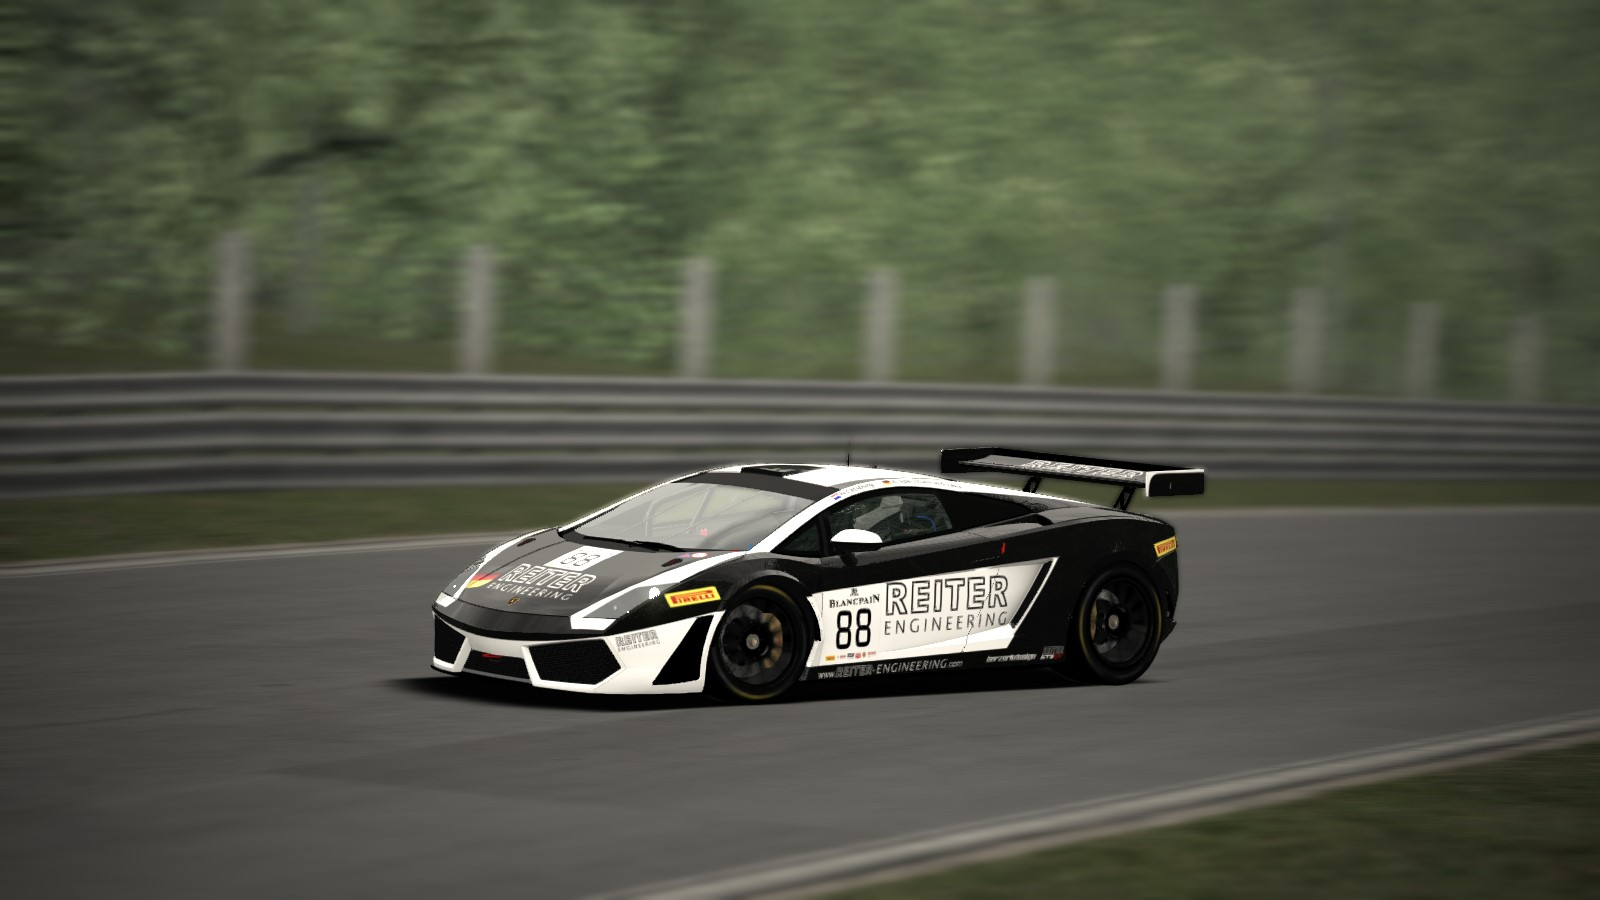 Screenshot_lamborghini_gallardo_gt3_brands-hatch_18-4-115-13-30-39.jpg